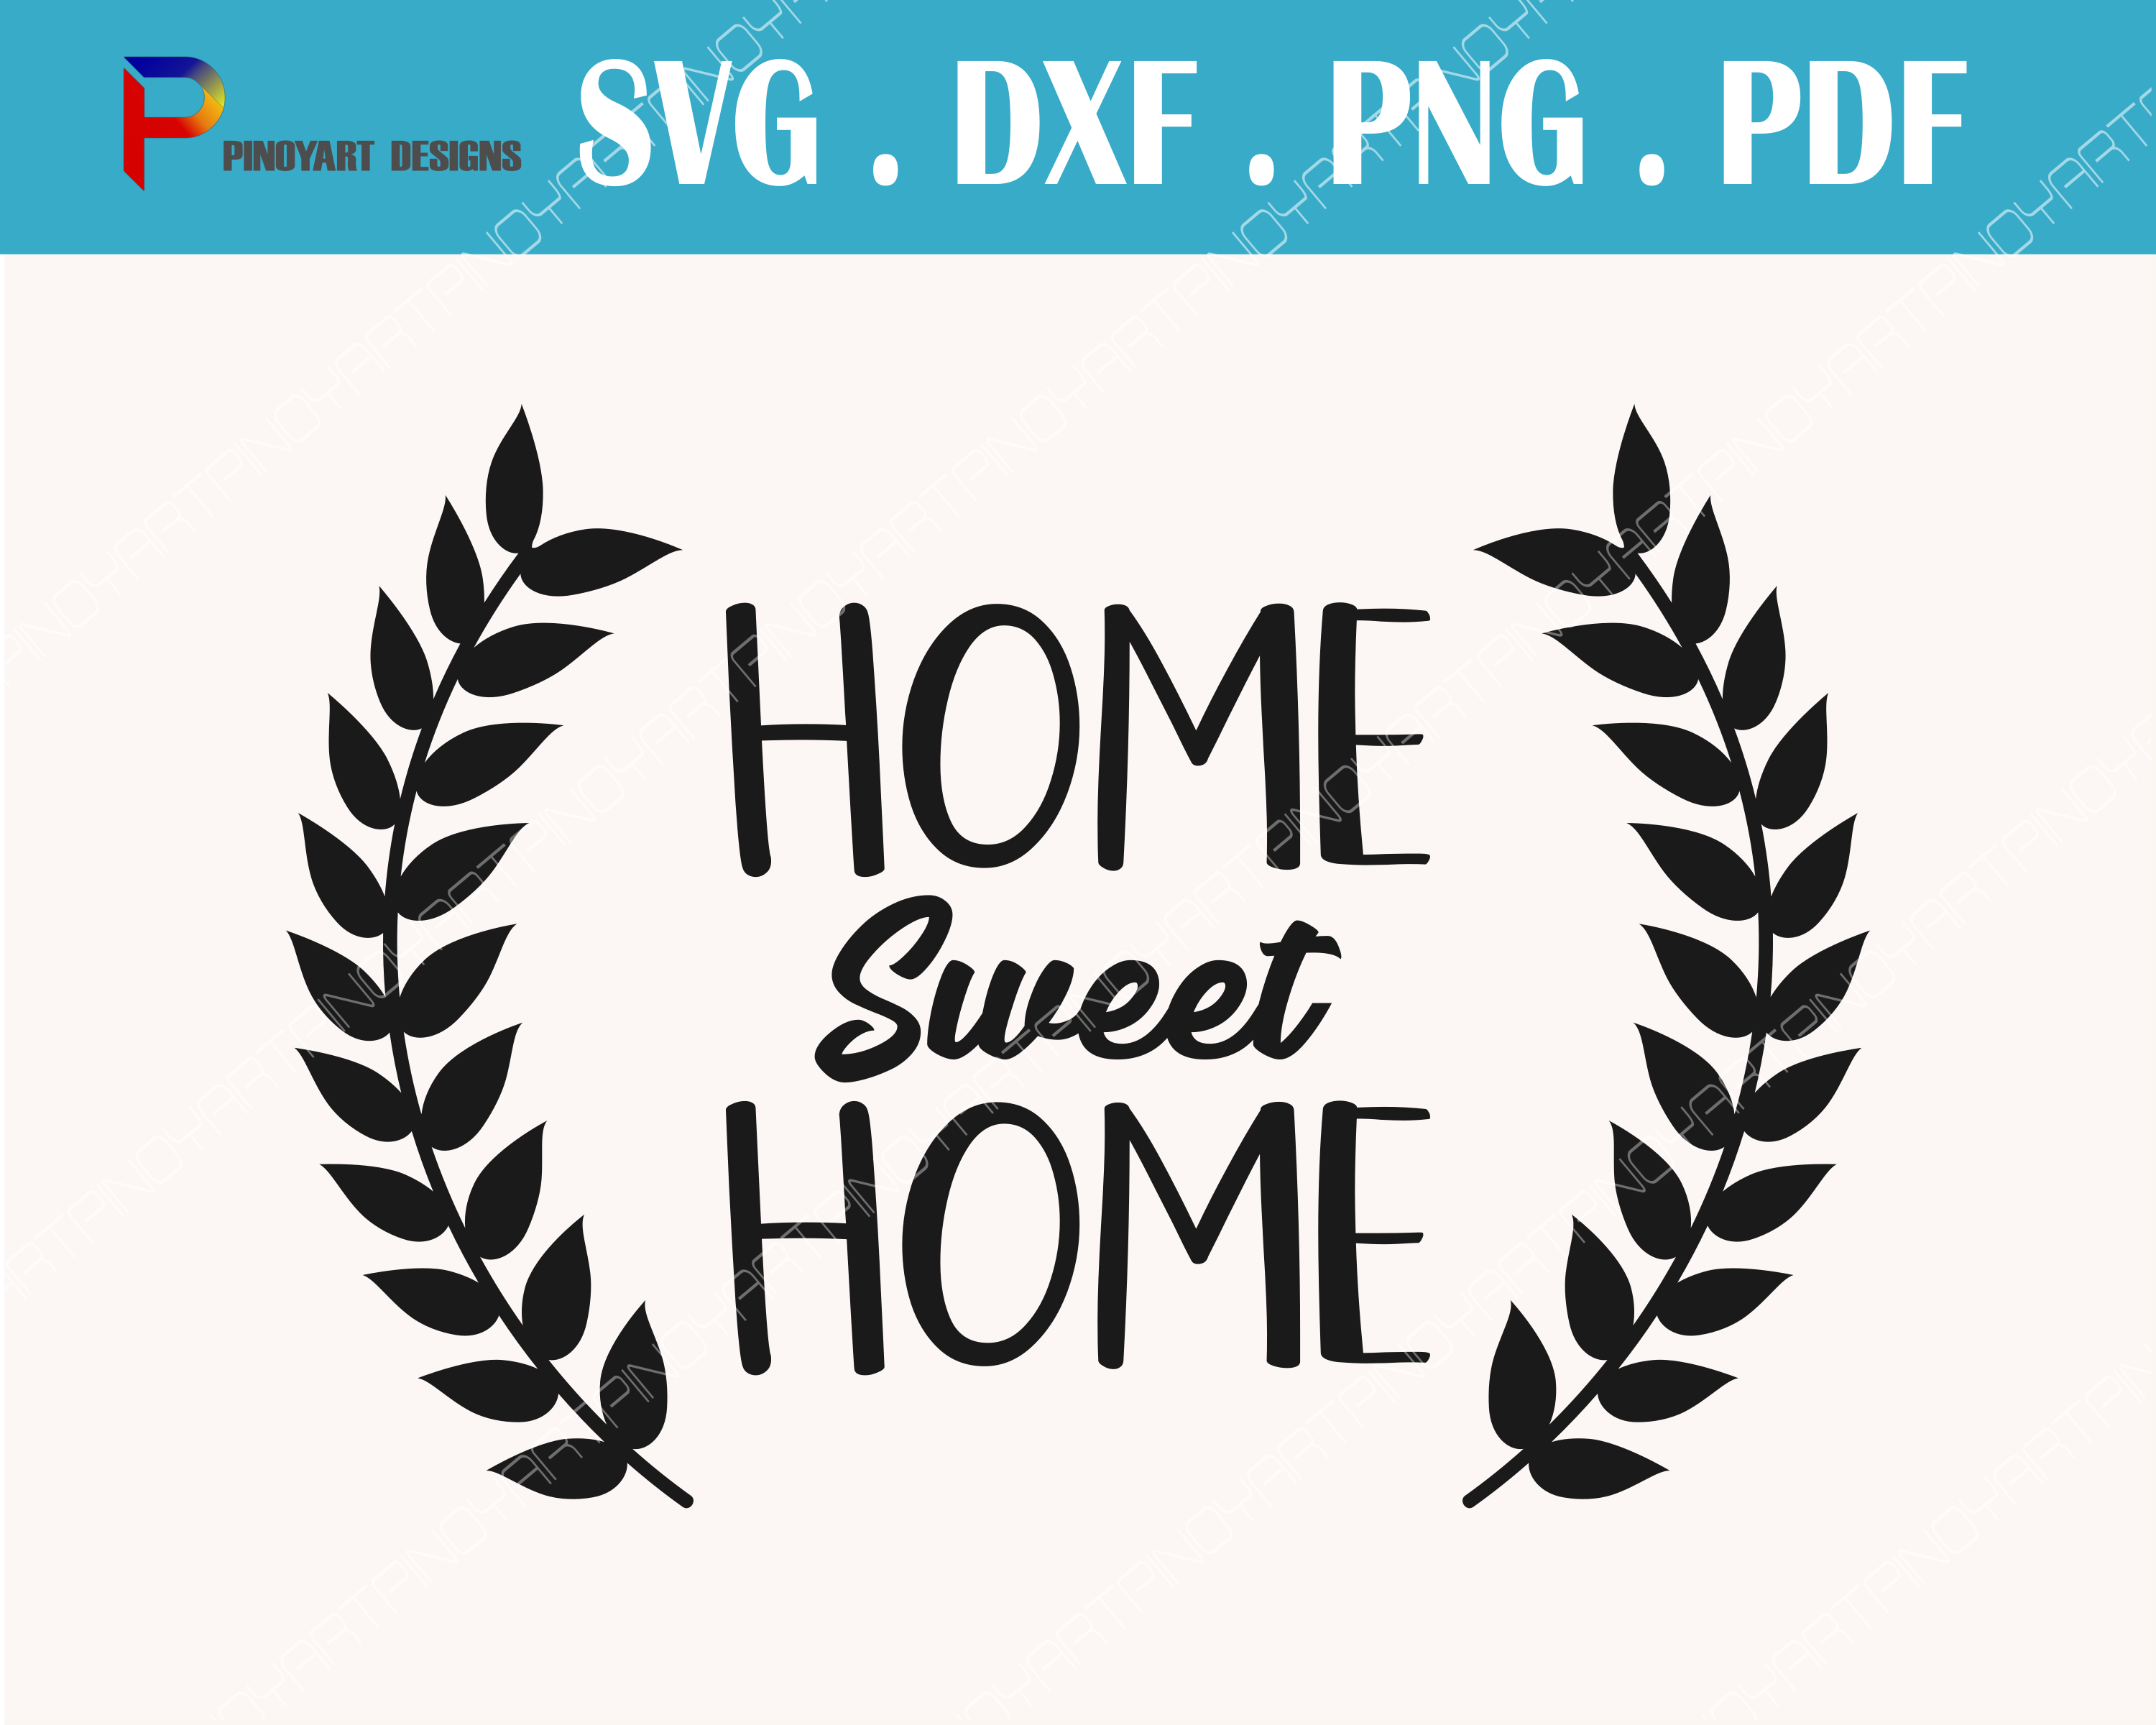 Home Sweet Home Svg, Home Svg, Home Svg File, Family Svg, Svg, Svg Files for Cricut Graphic Crafts By Pinoyartkreatib